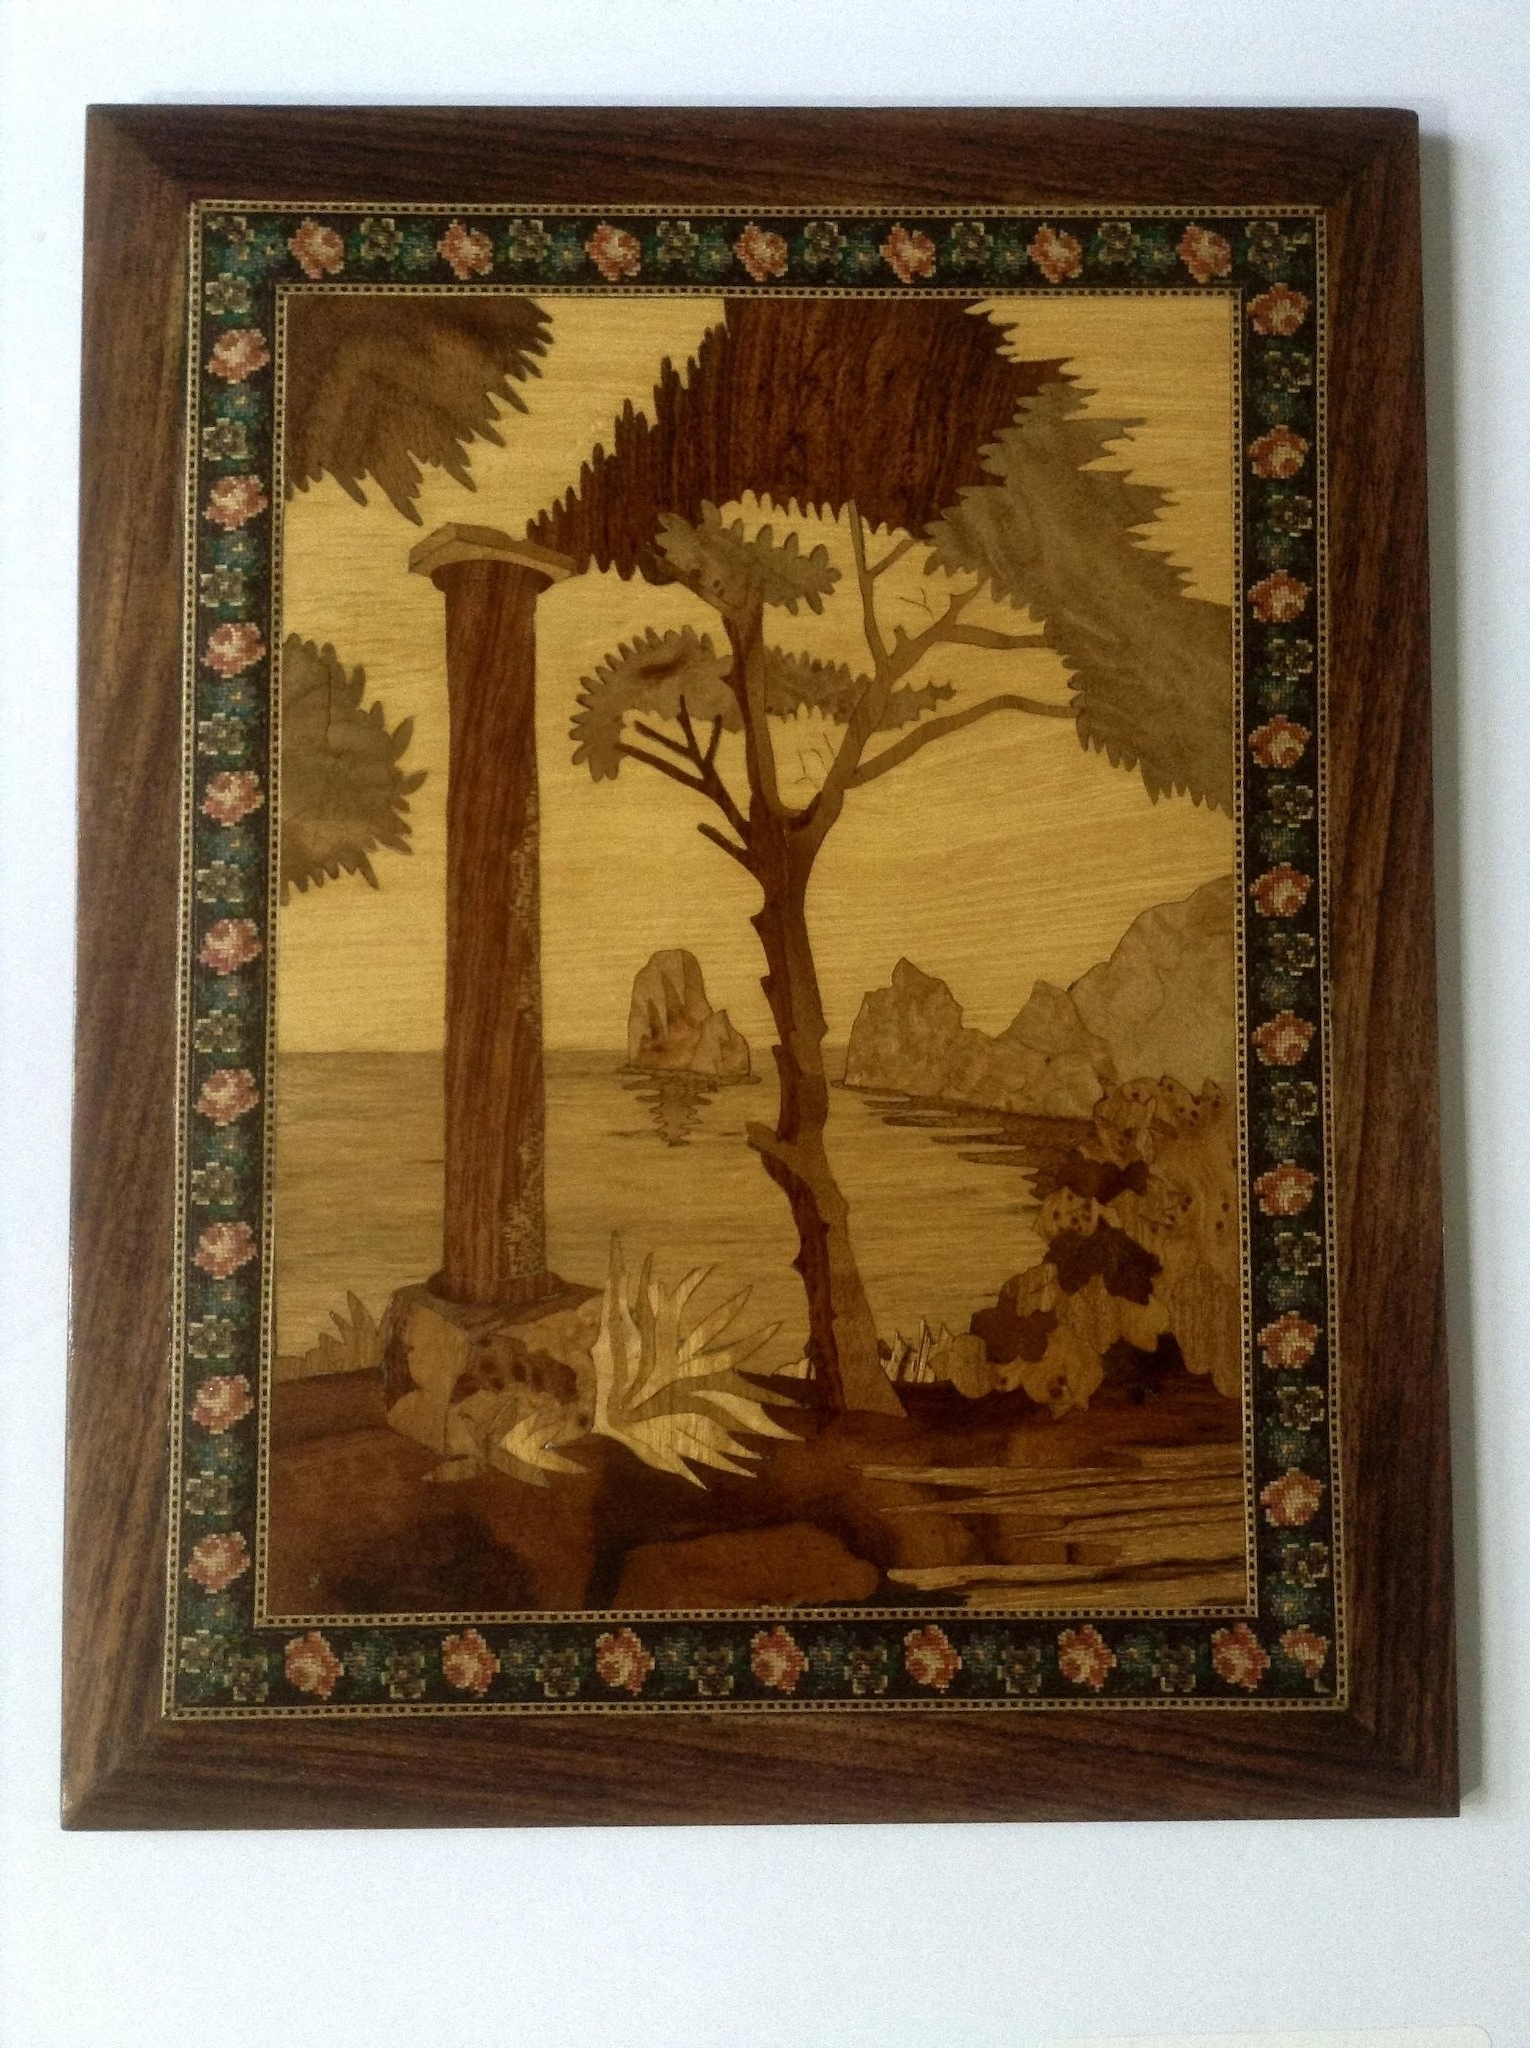 Preferred Rare Italian Coastal Scenes Intarsia Marquetry Inlaid Wood Coastal Pertaining To Italian Inlaid Wood Wall Art (View 10 of 15)